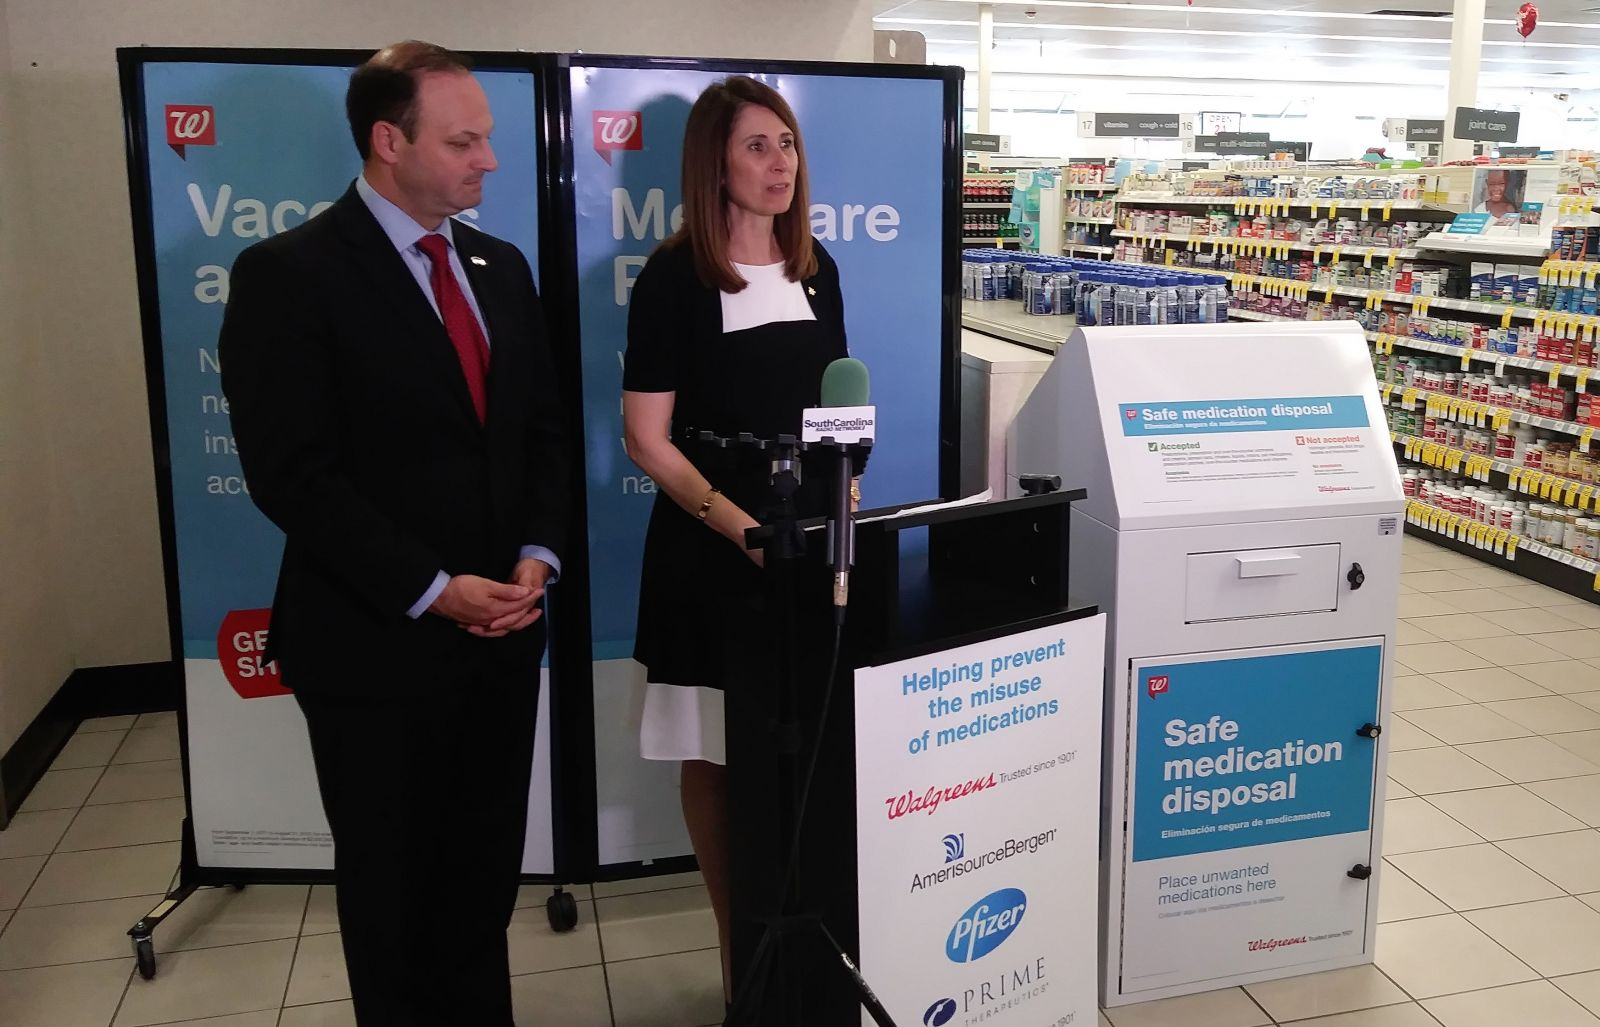 Niki Pappos-Elledge (right), health care supervisor for Columbia Walgreens, announces the addition of 11 medication disposal kiosks around the state. She is joined by S.C. Attorney General Alan Wilson. (Photo/Travis Boland)